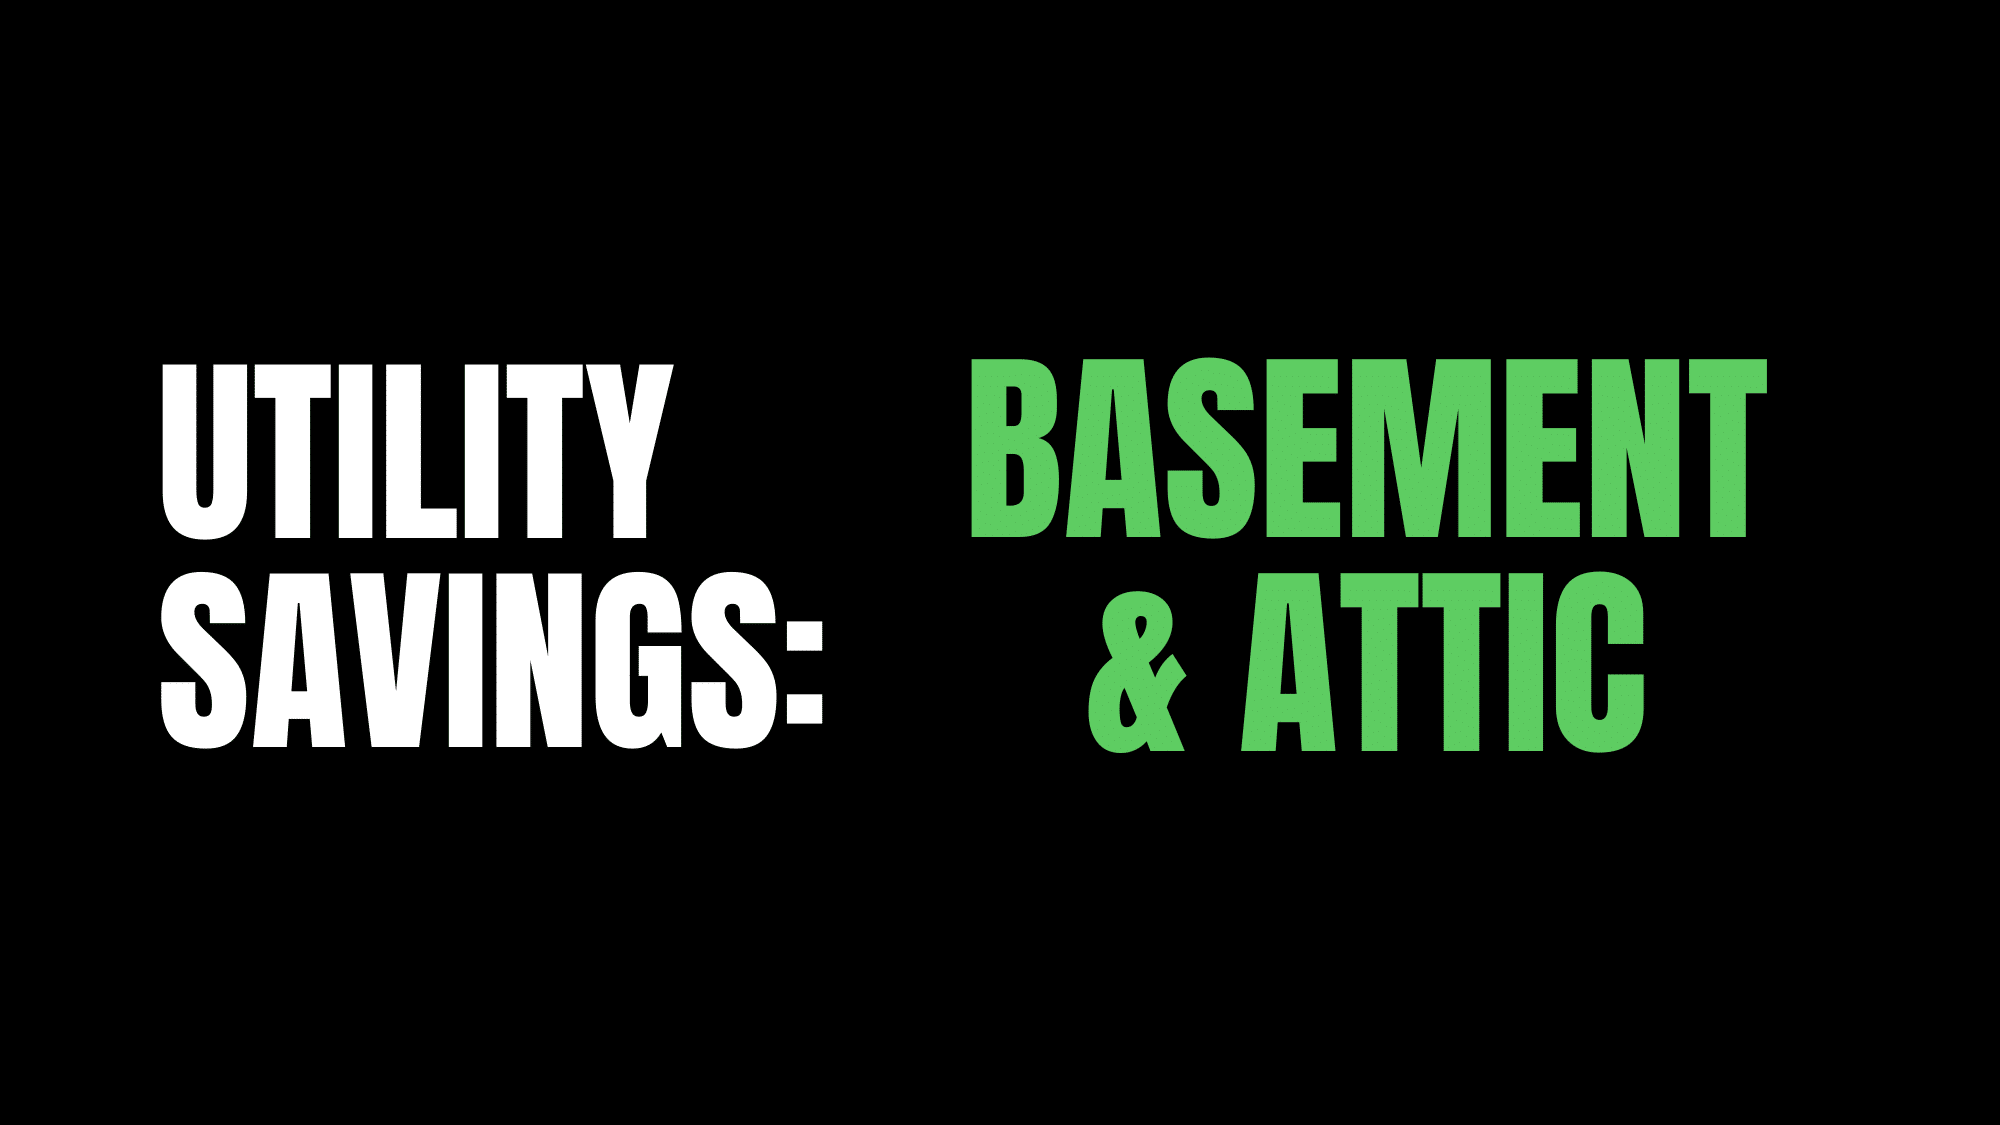 Savings money on utilities and energy by upgrading the basement and attic